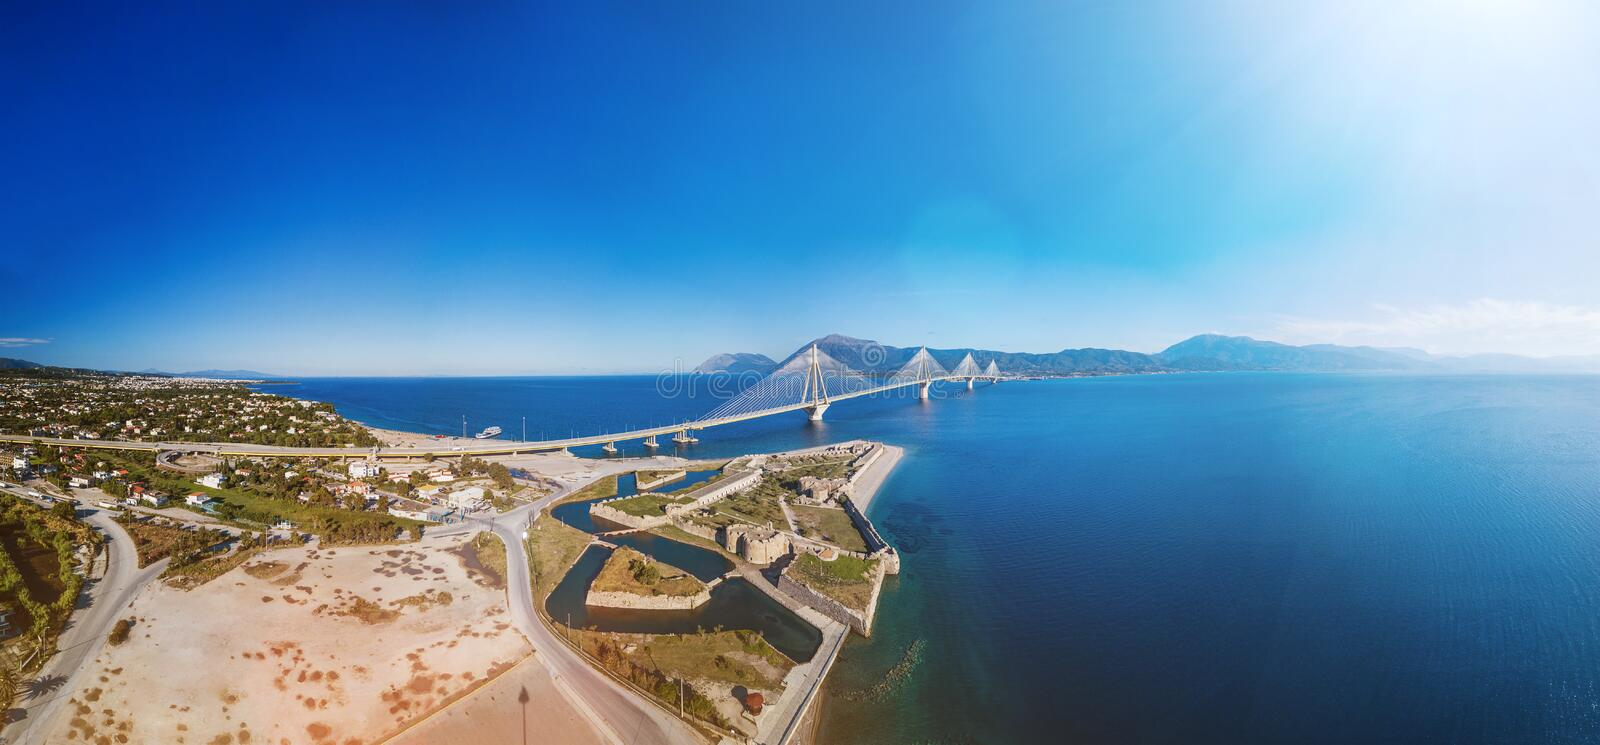 Fortress and bridge of Rio Antirio, Patra, Greece. Aerial drone bird`s eye view photo. Fortress and bridge of Rio Antirio, Patra, Peloponnese, Greece. Aerial royalty free stock photos